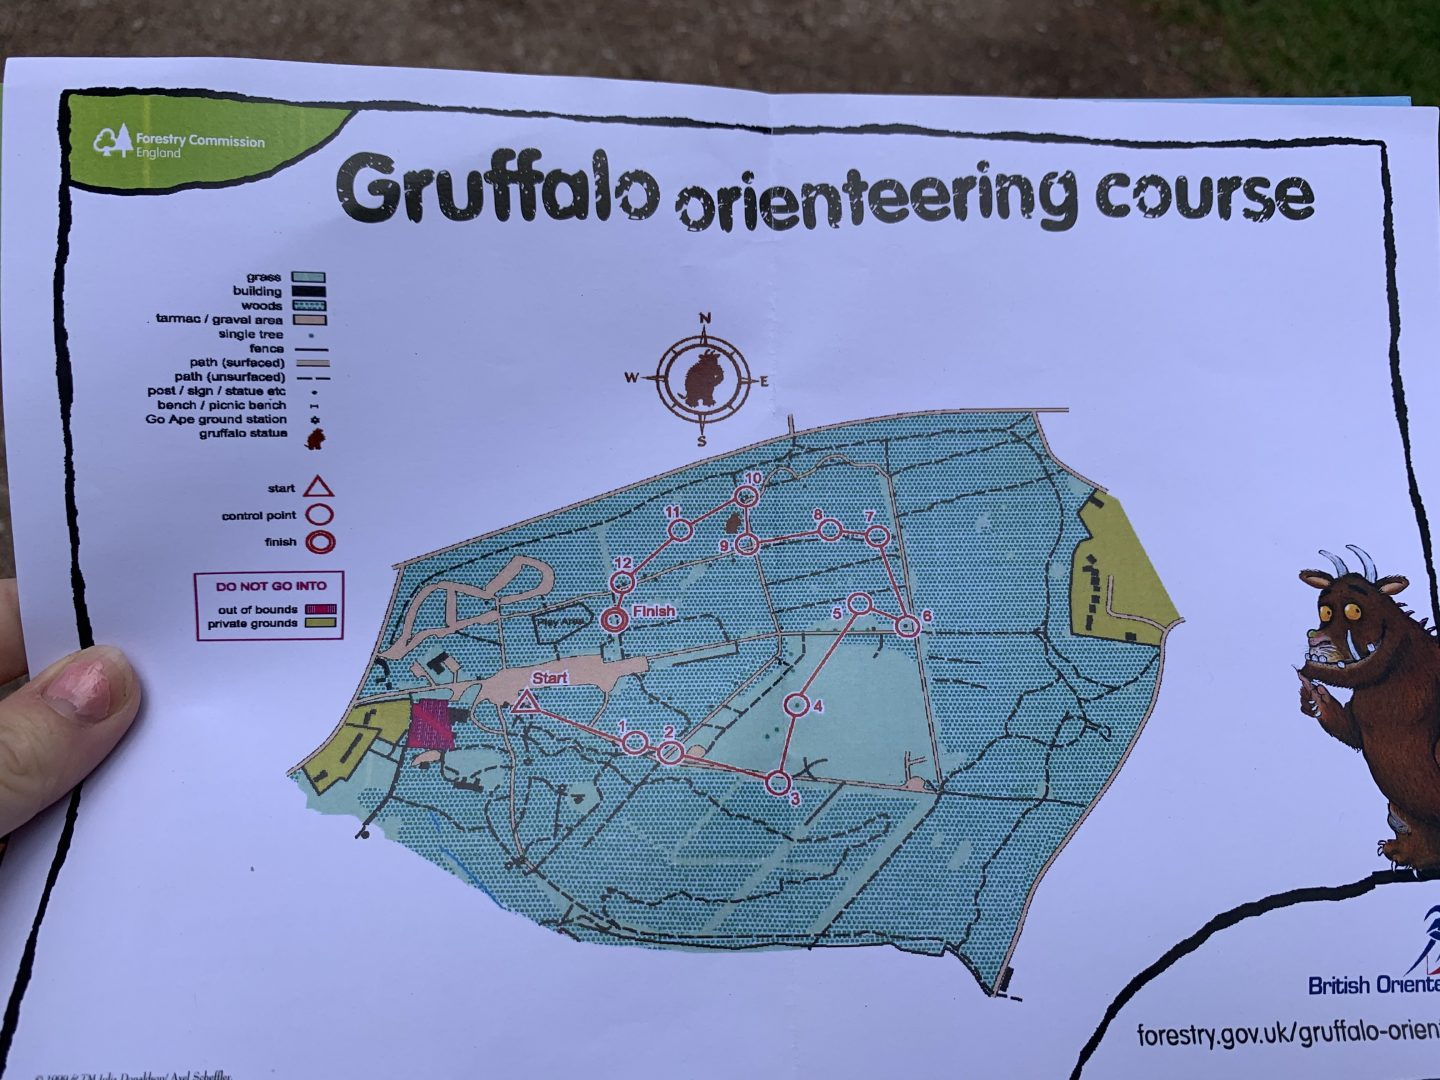 Gruffalo orienteering course at Cannock Chase